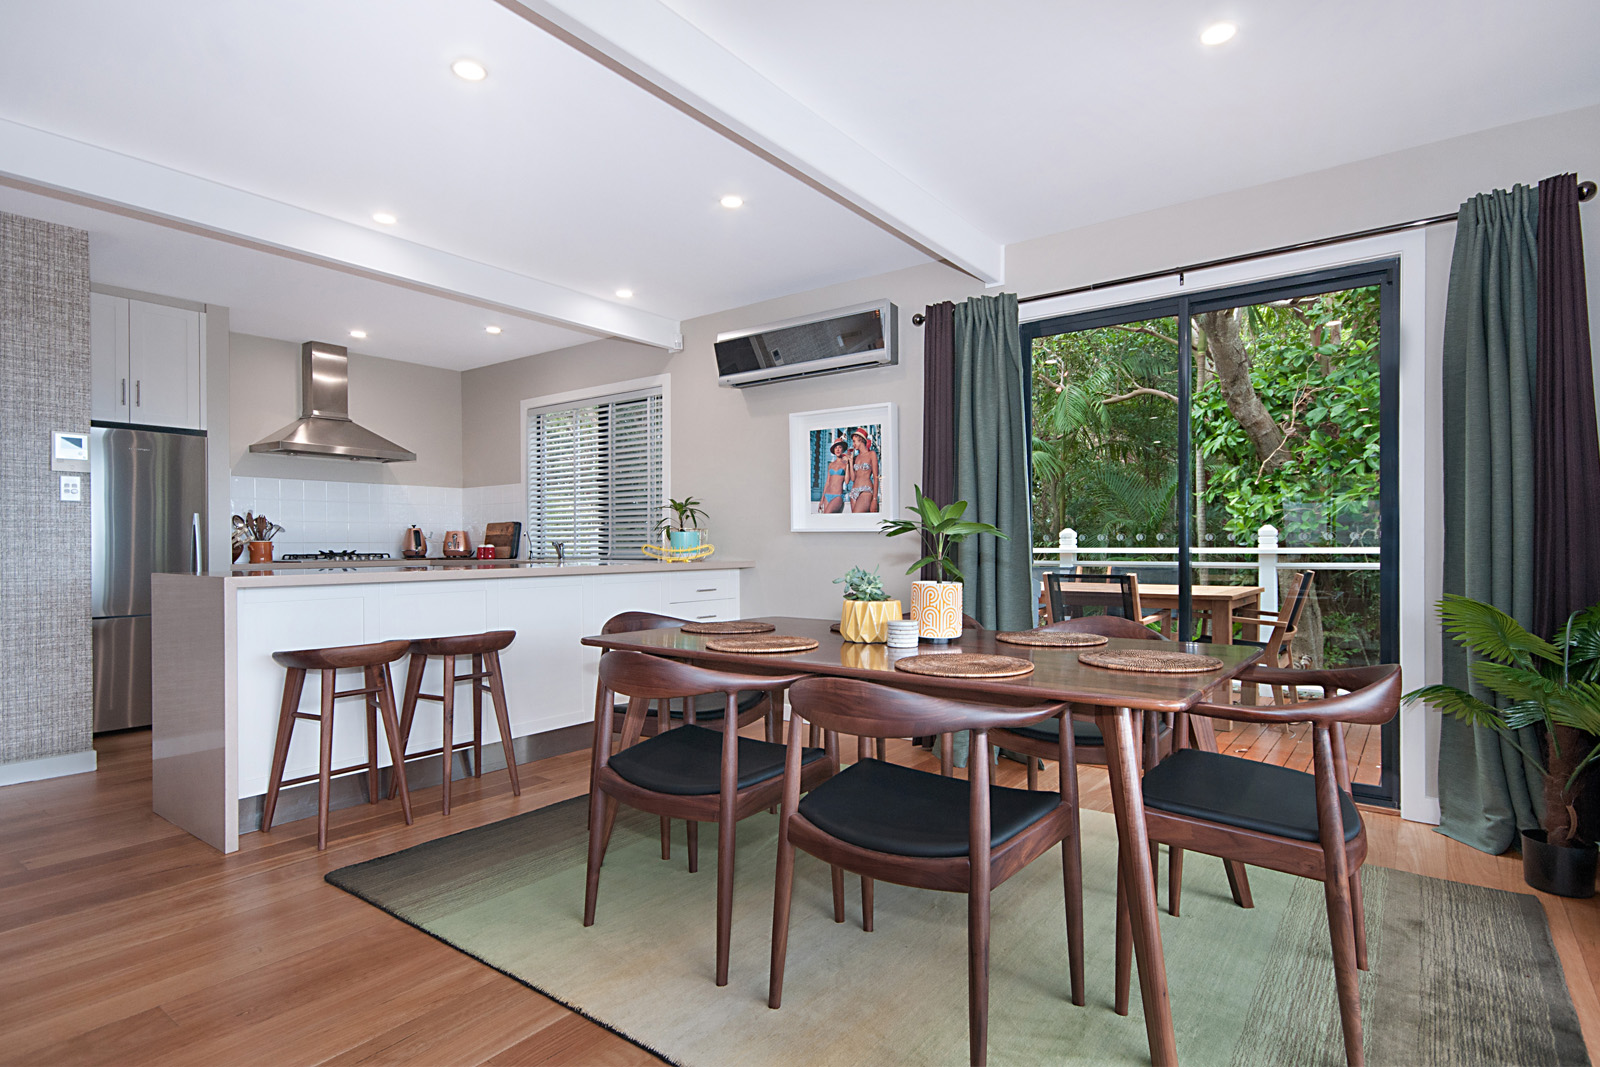 Cherie-Barber_Renovating-For-Profit_GET-THE-LOOK-Cherie-Barbers-Byron-Bay-Holiday-Home_Kitchen-After